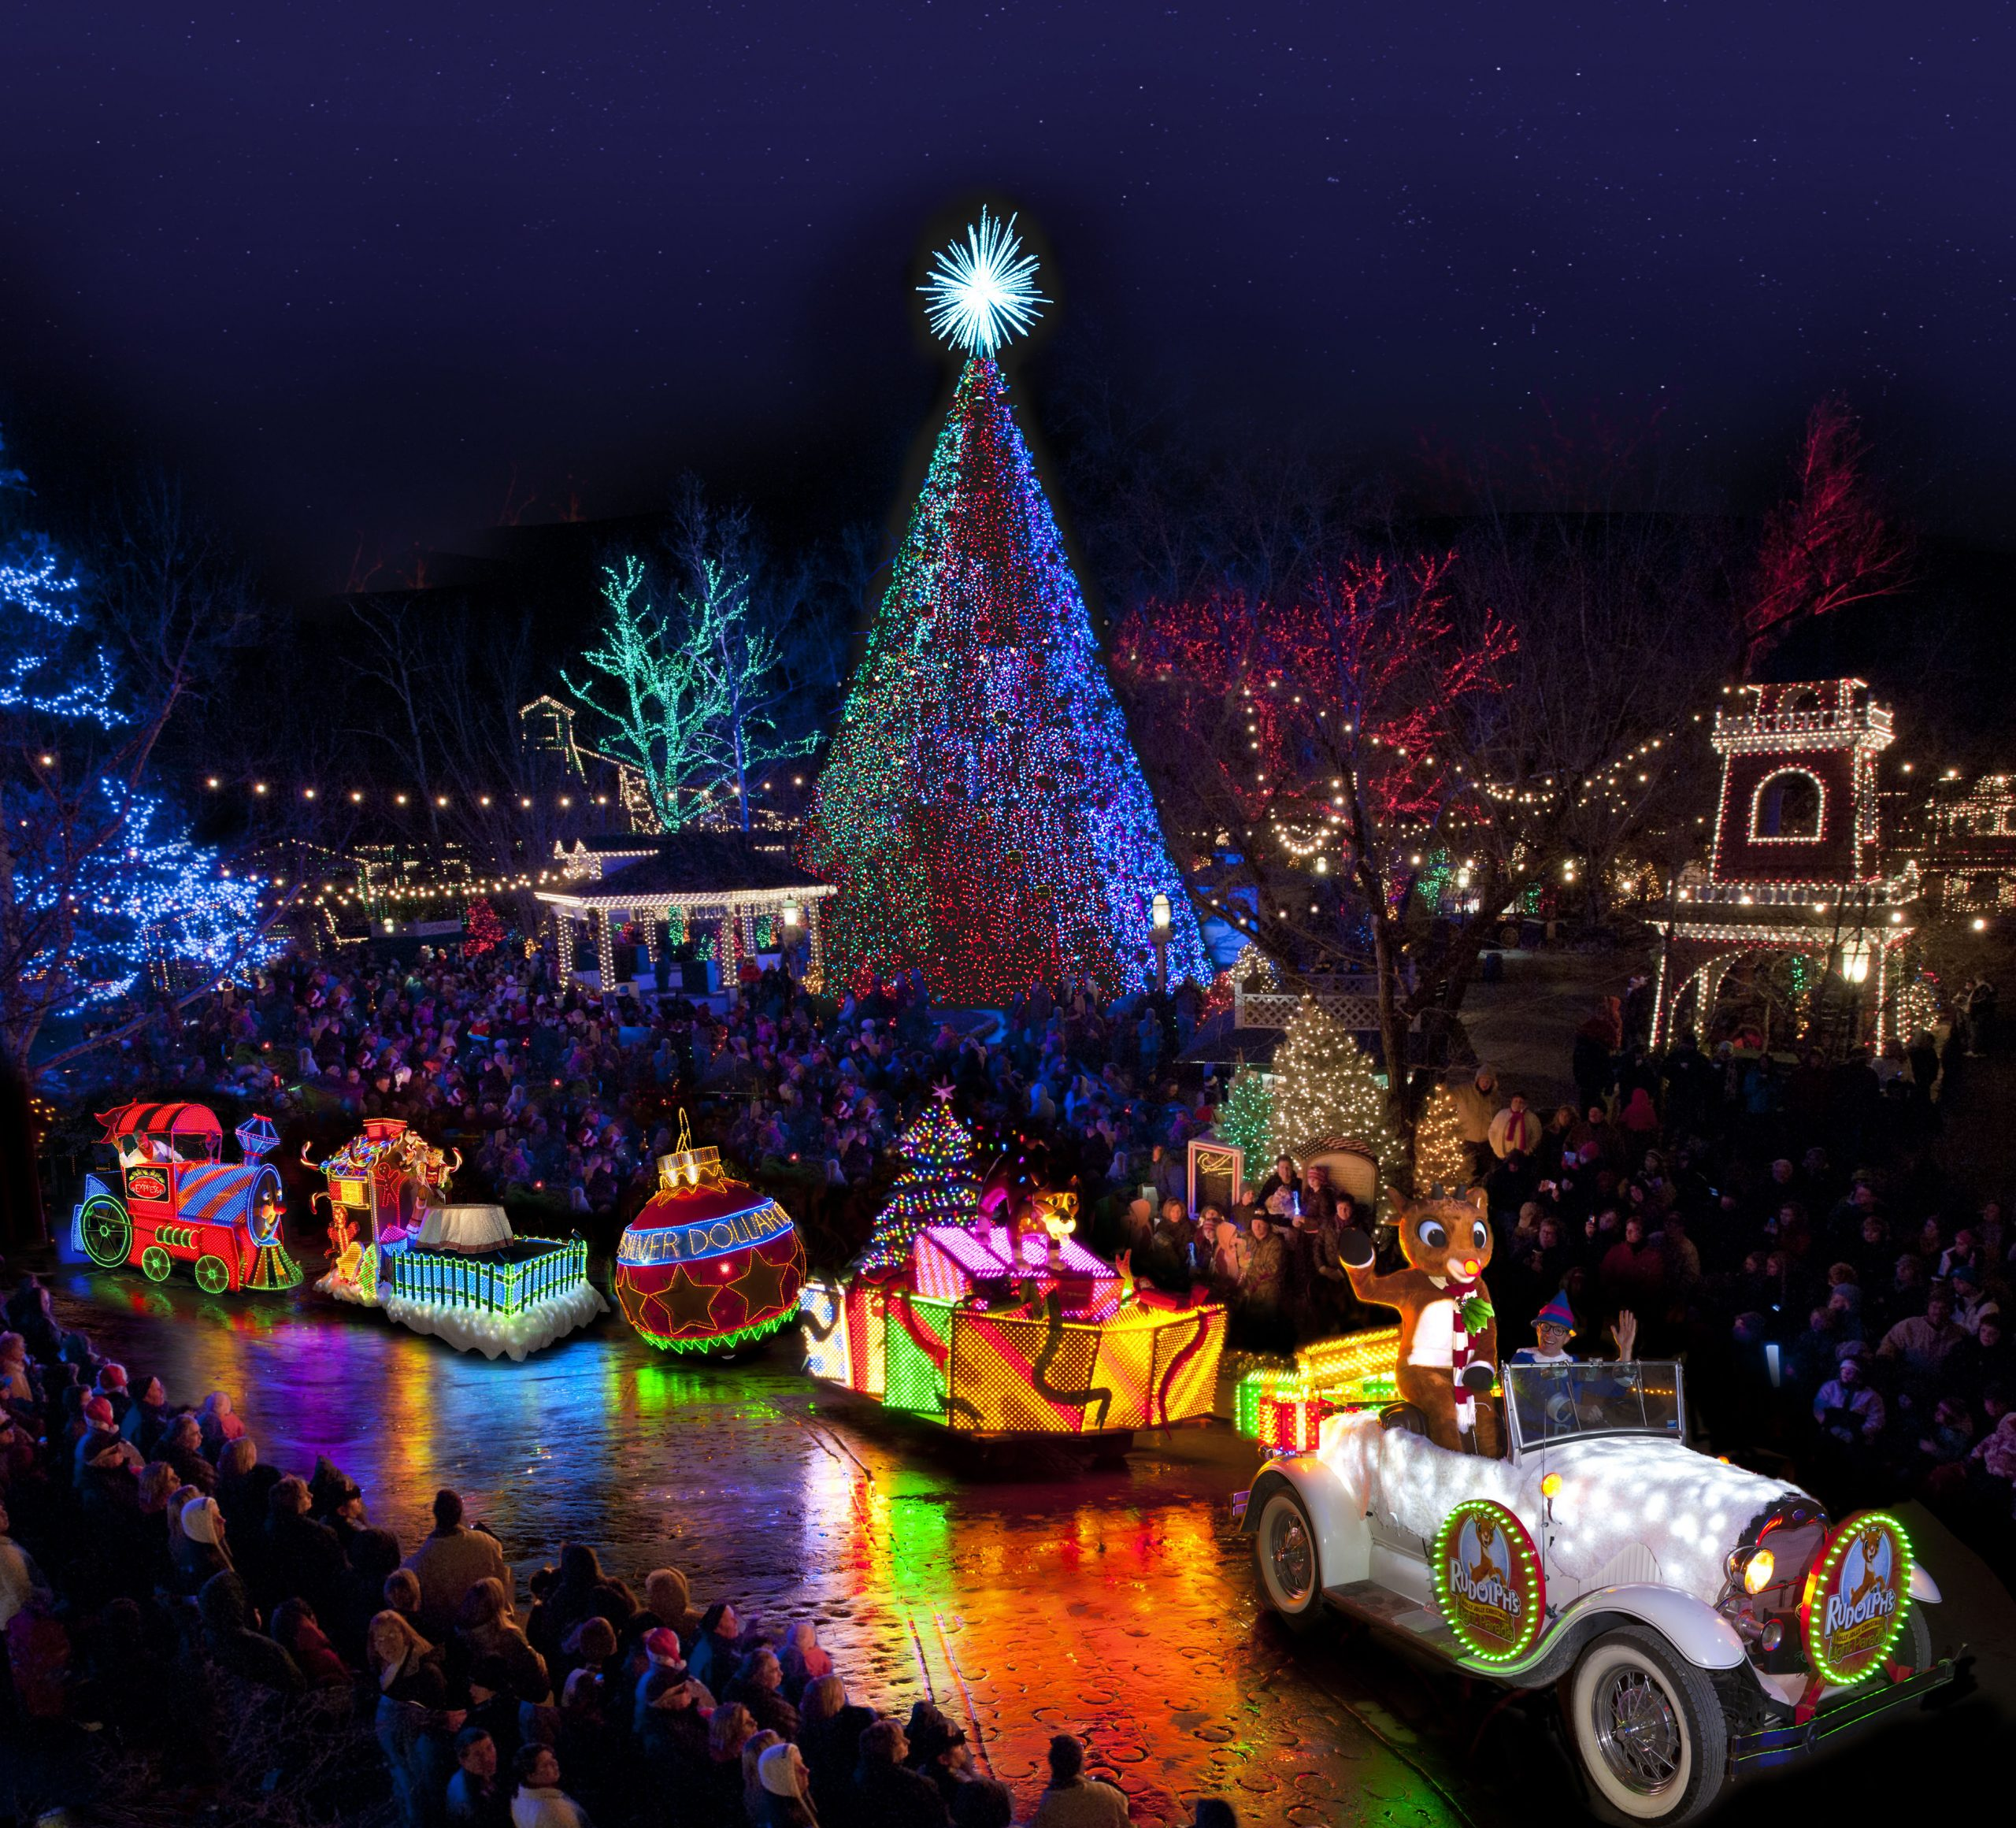 5-fun-activities-to-enjoy-on-christmas-in-branson